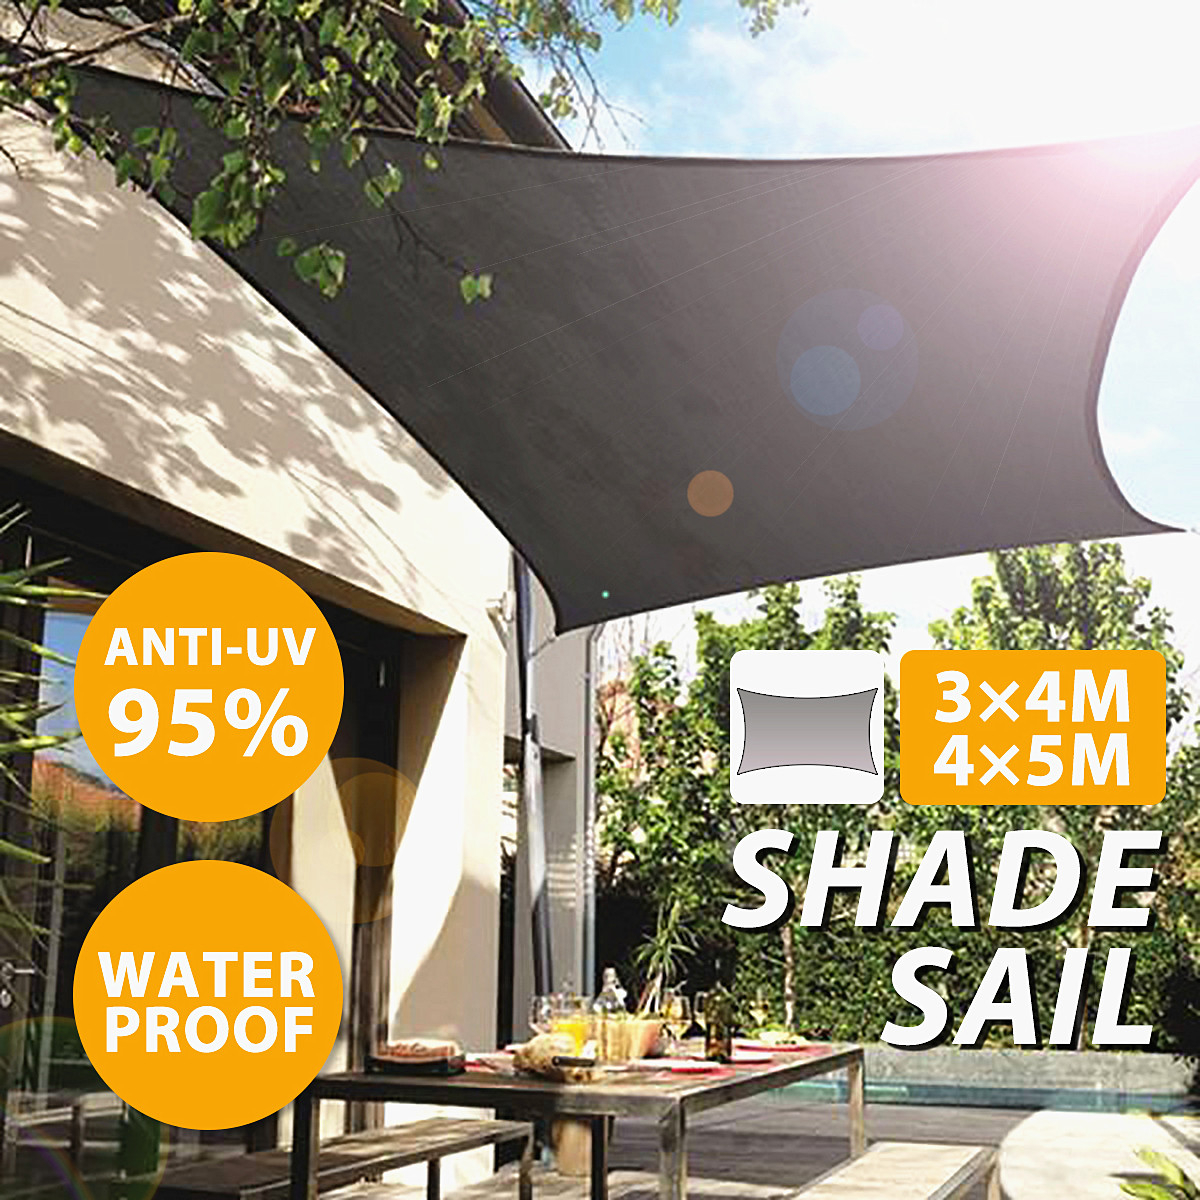 13x16ft/10x13ft Waterproof Sun Shade Sail Canopy Rectangle UV Blocked Silver Outdoor Garden Patio Cover Pool Awning